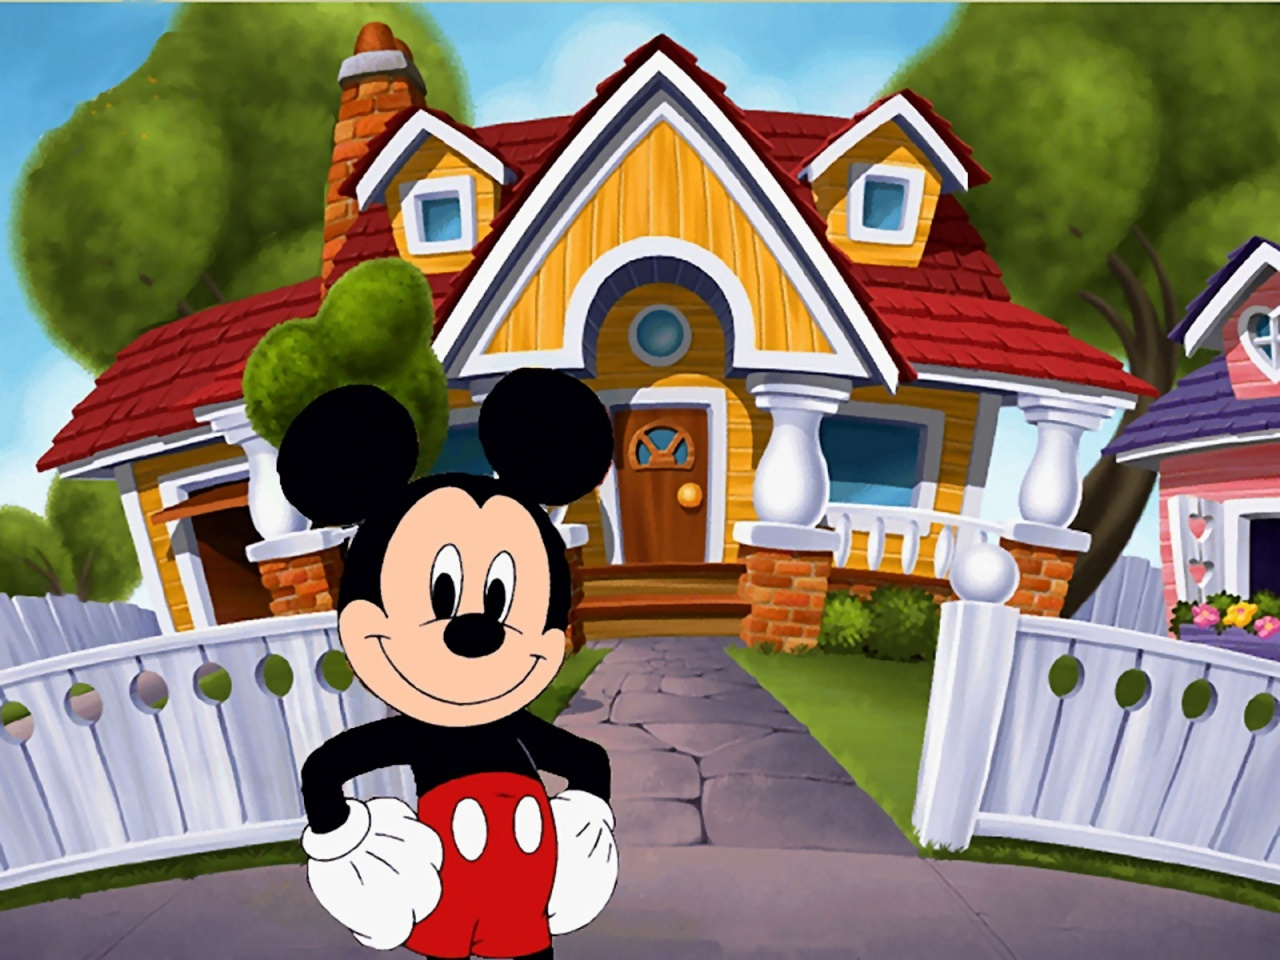 Free Gallery Of Mickey Mouse Wallpaper For